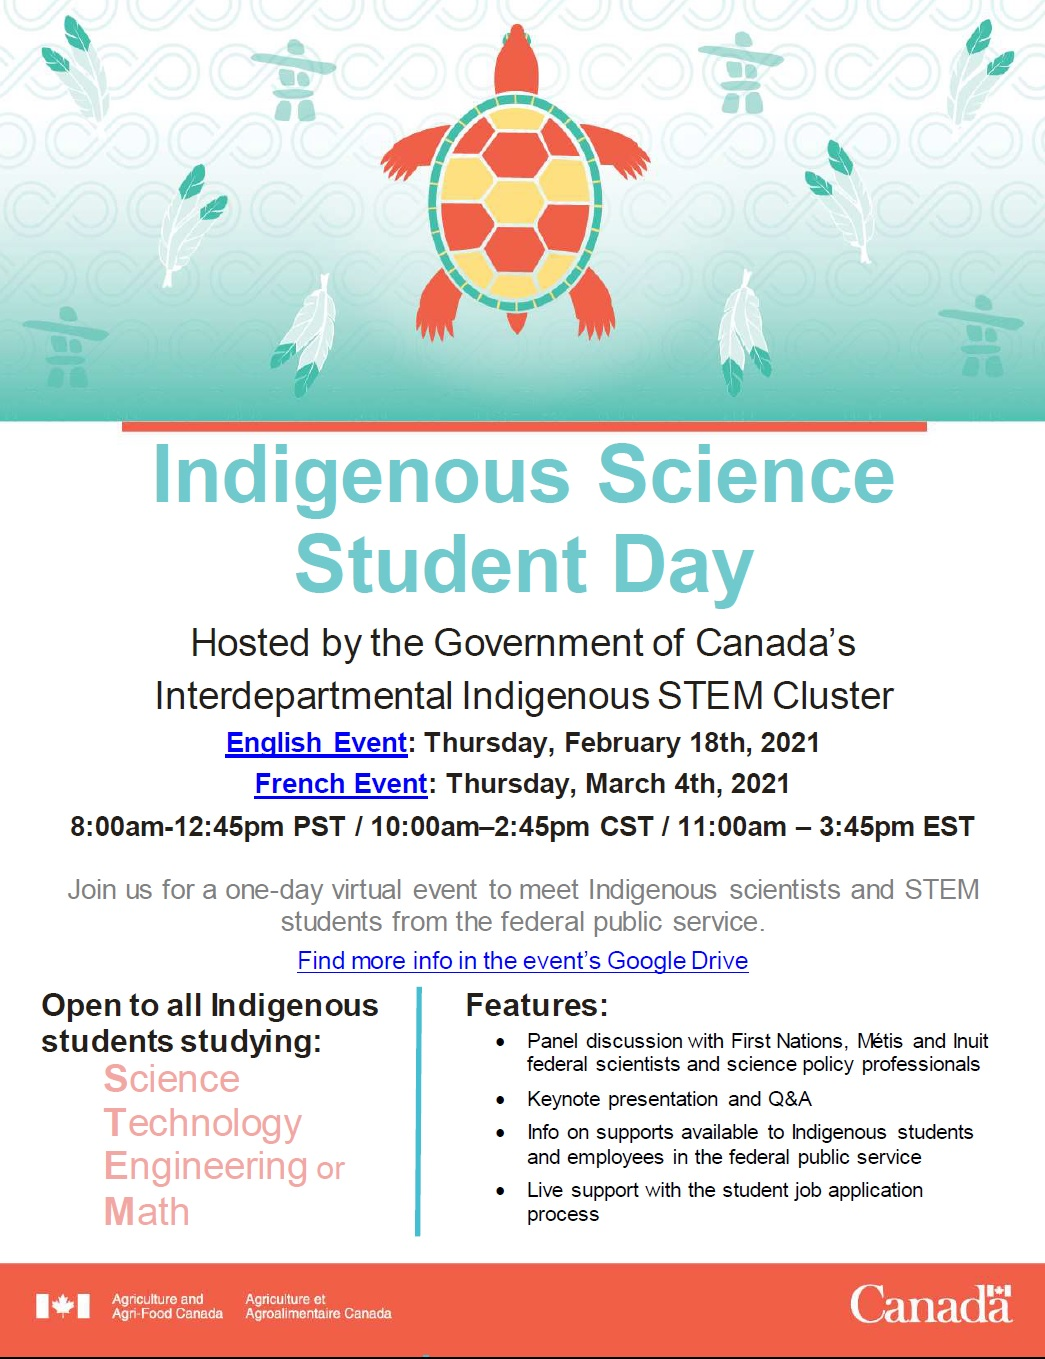 Indigenous Science Student Day